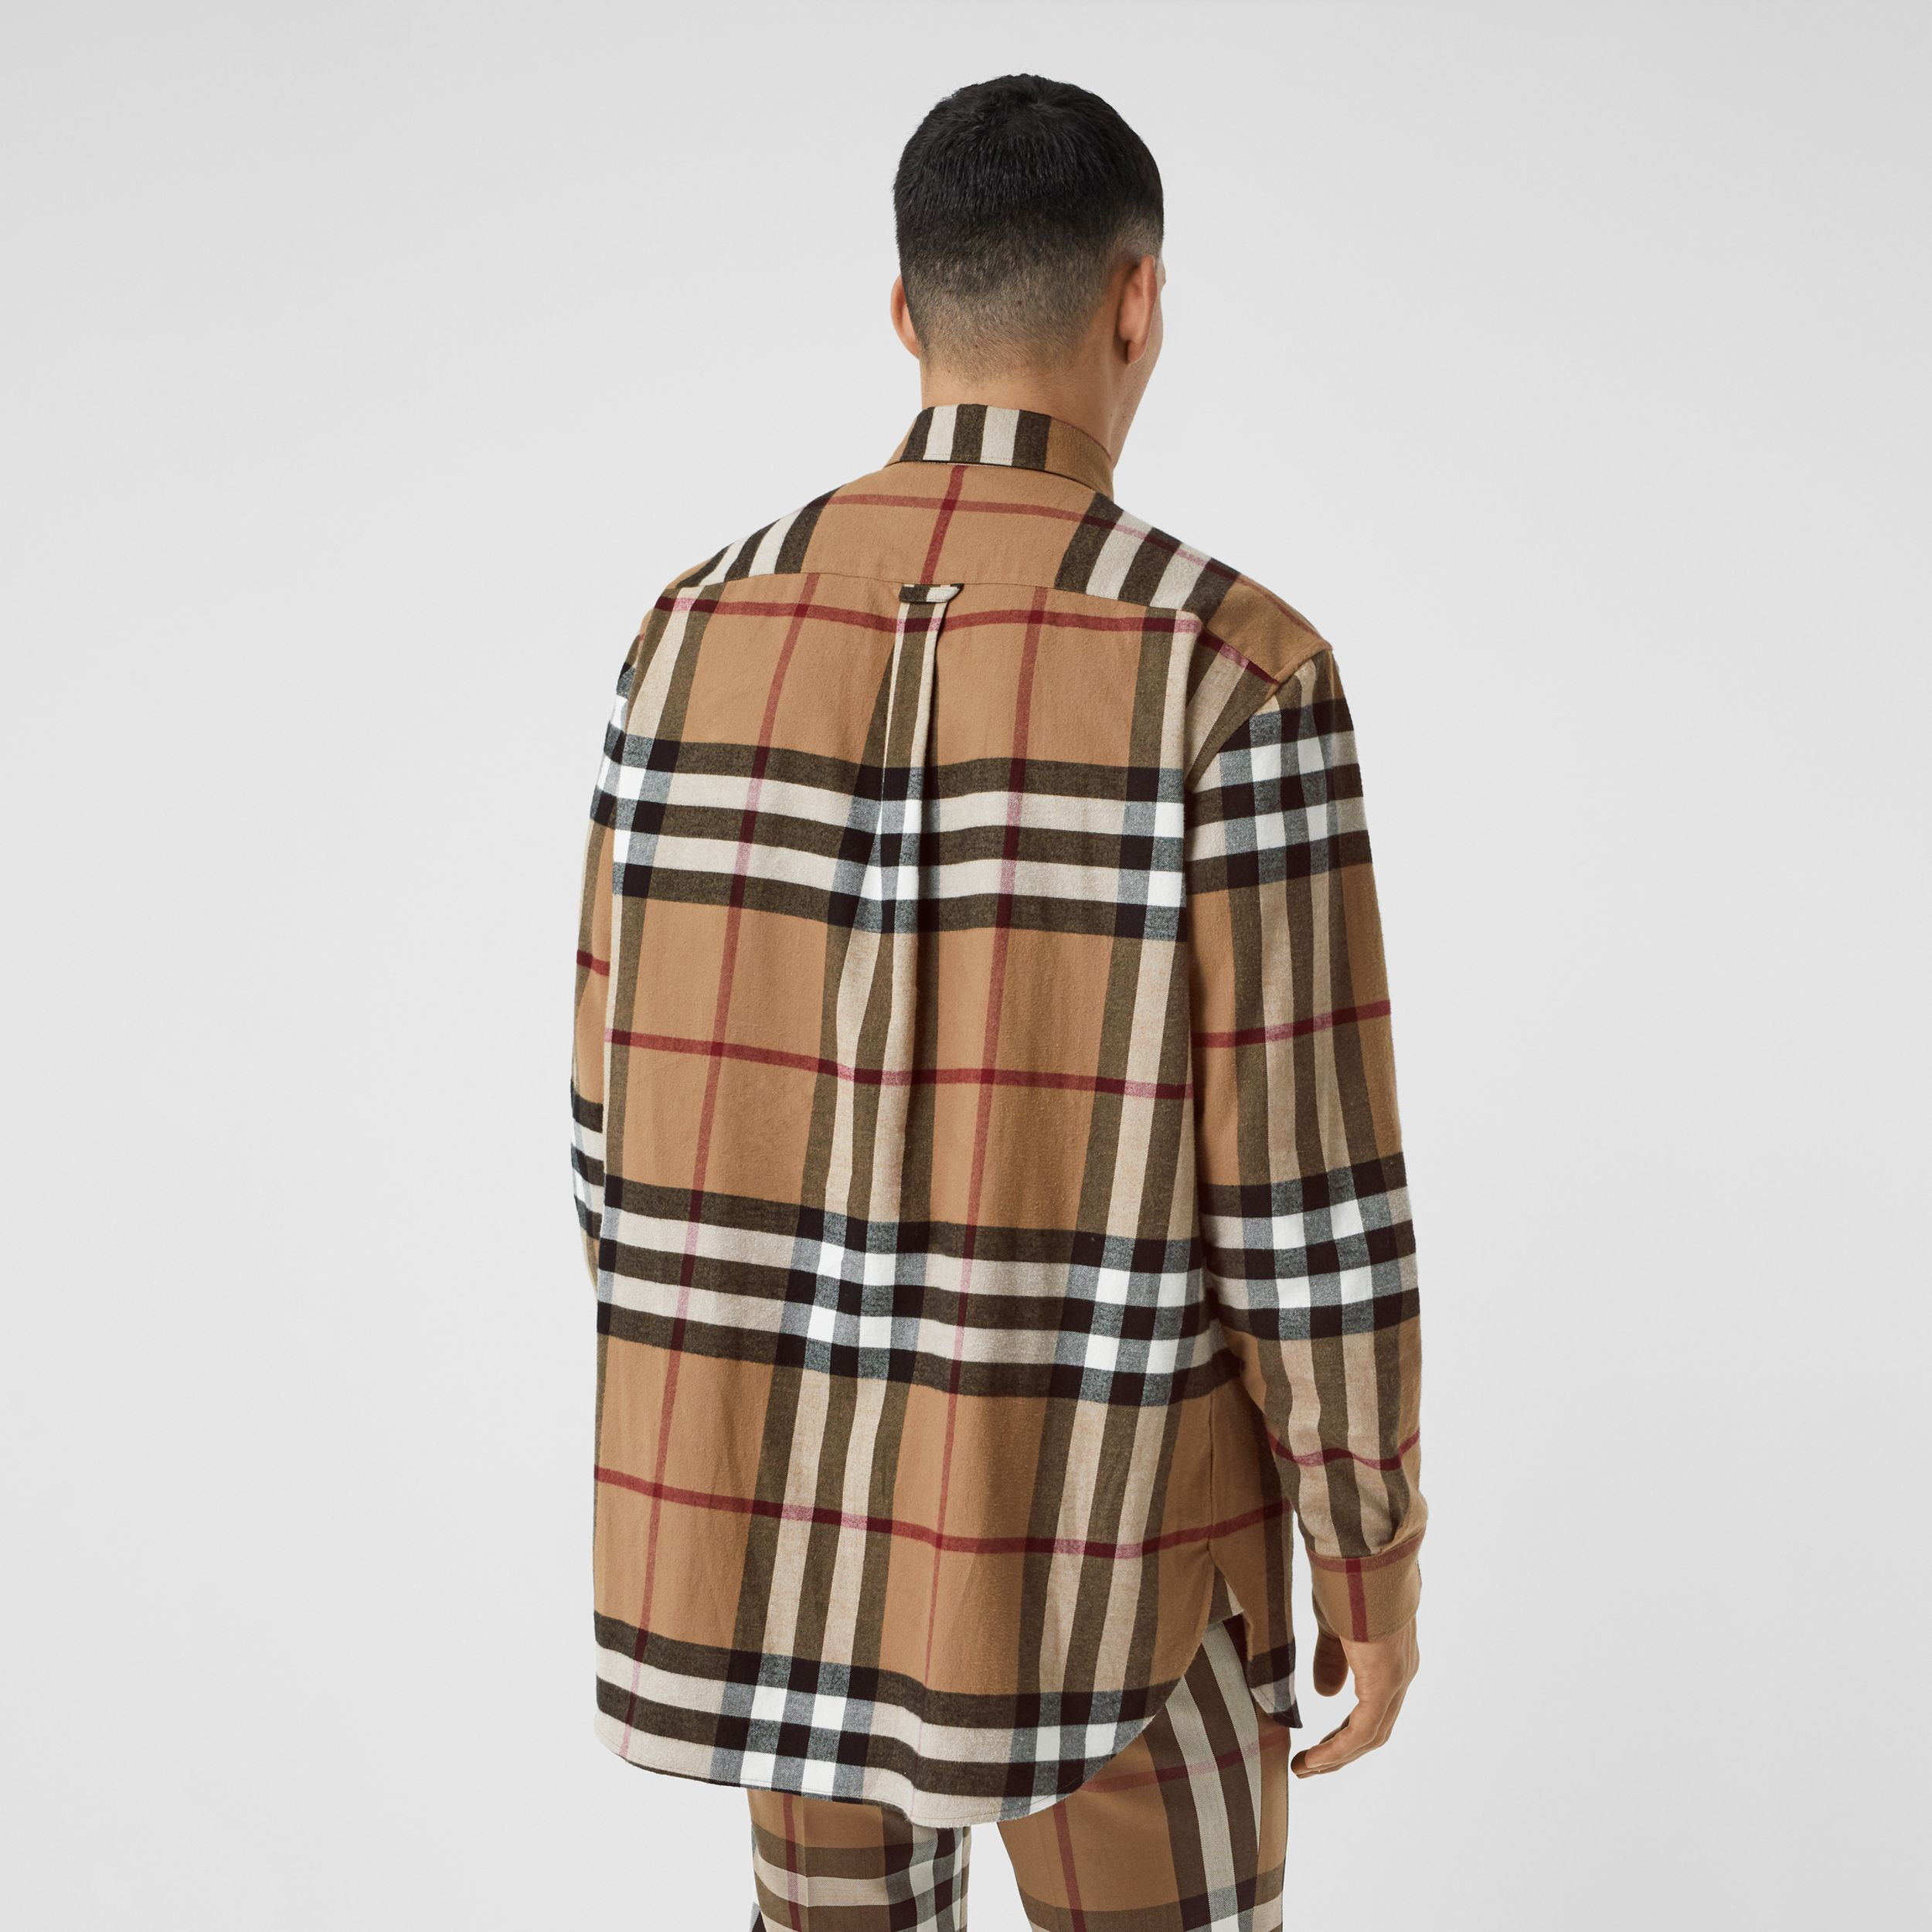 Relaxed Fit House Check Cotton Flannel Shirt in Birch Brown | Burberry - 3